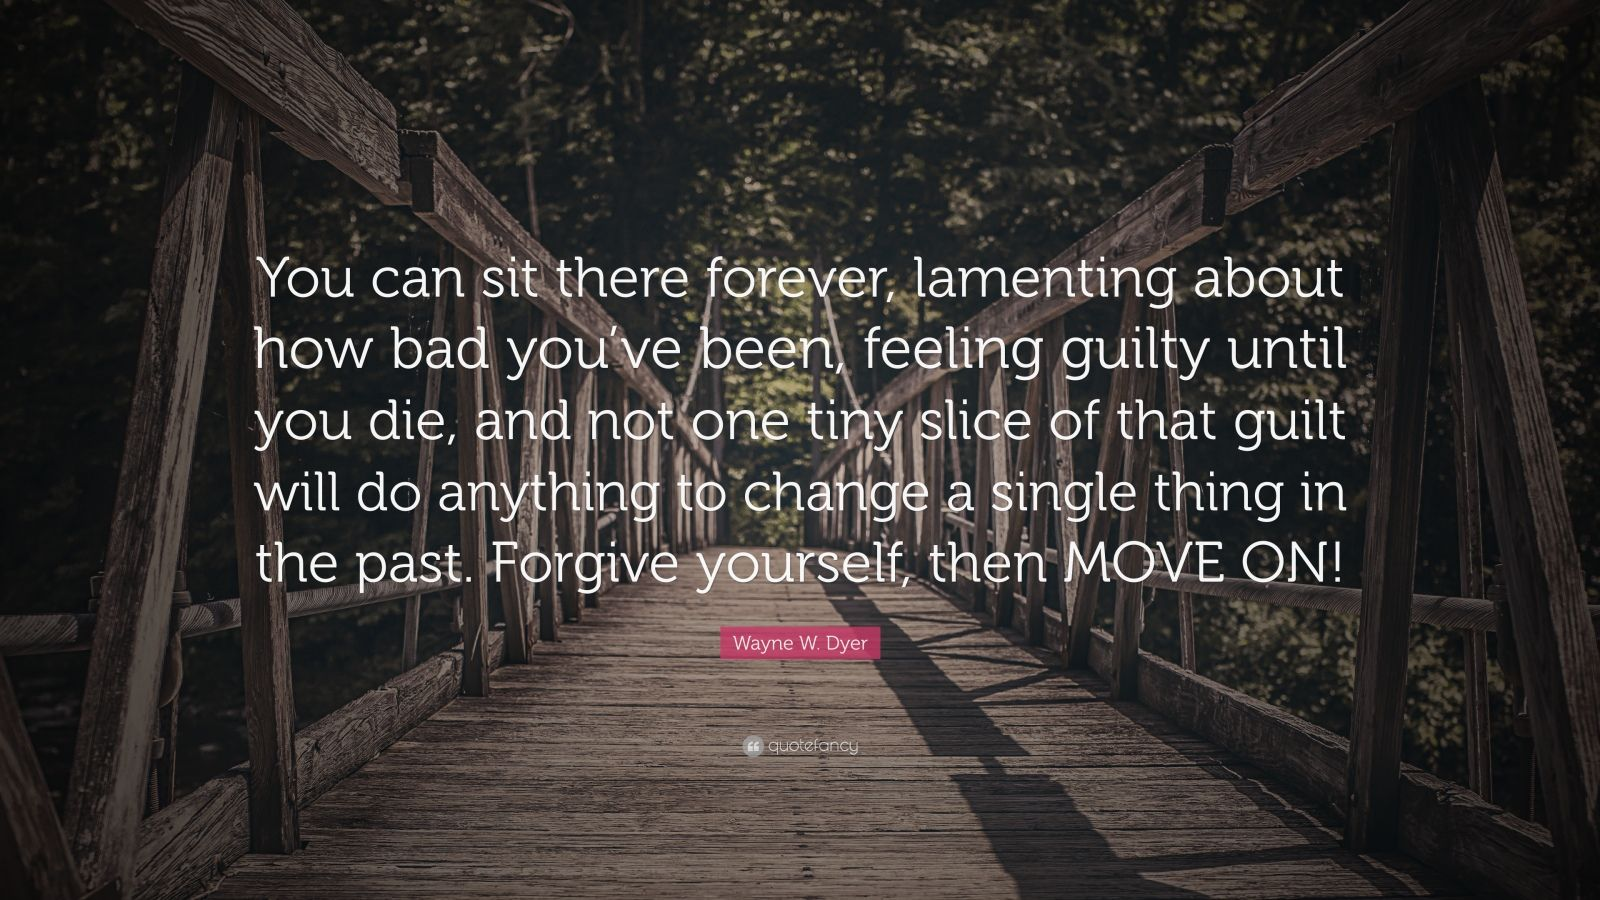 "Wayne W. Dyer Quote: ""You can sit there forever, lamenting about how bad you've been, feeling guilty until you die, and not one tiny slice of that guilt will do anything to change a single thing in the past. Forgive yourself, then MOVE ON!"""